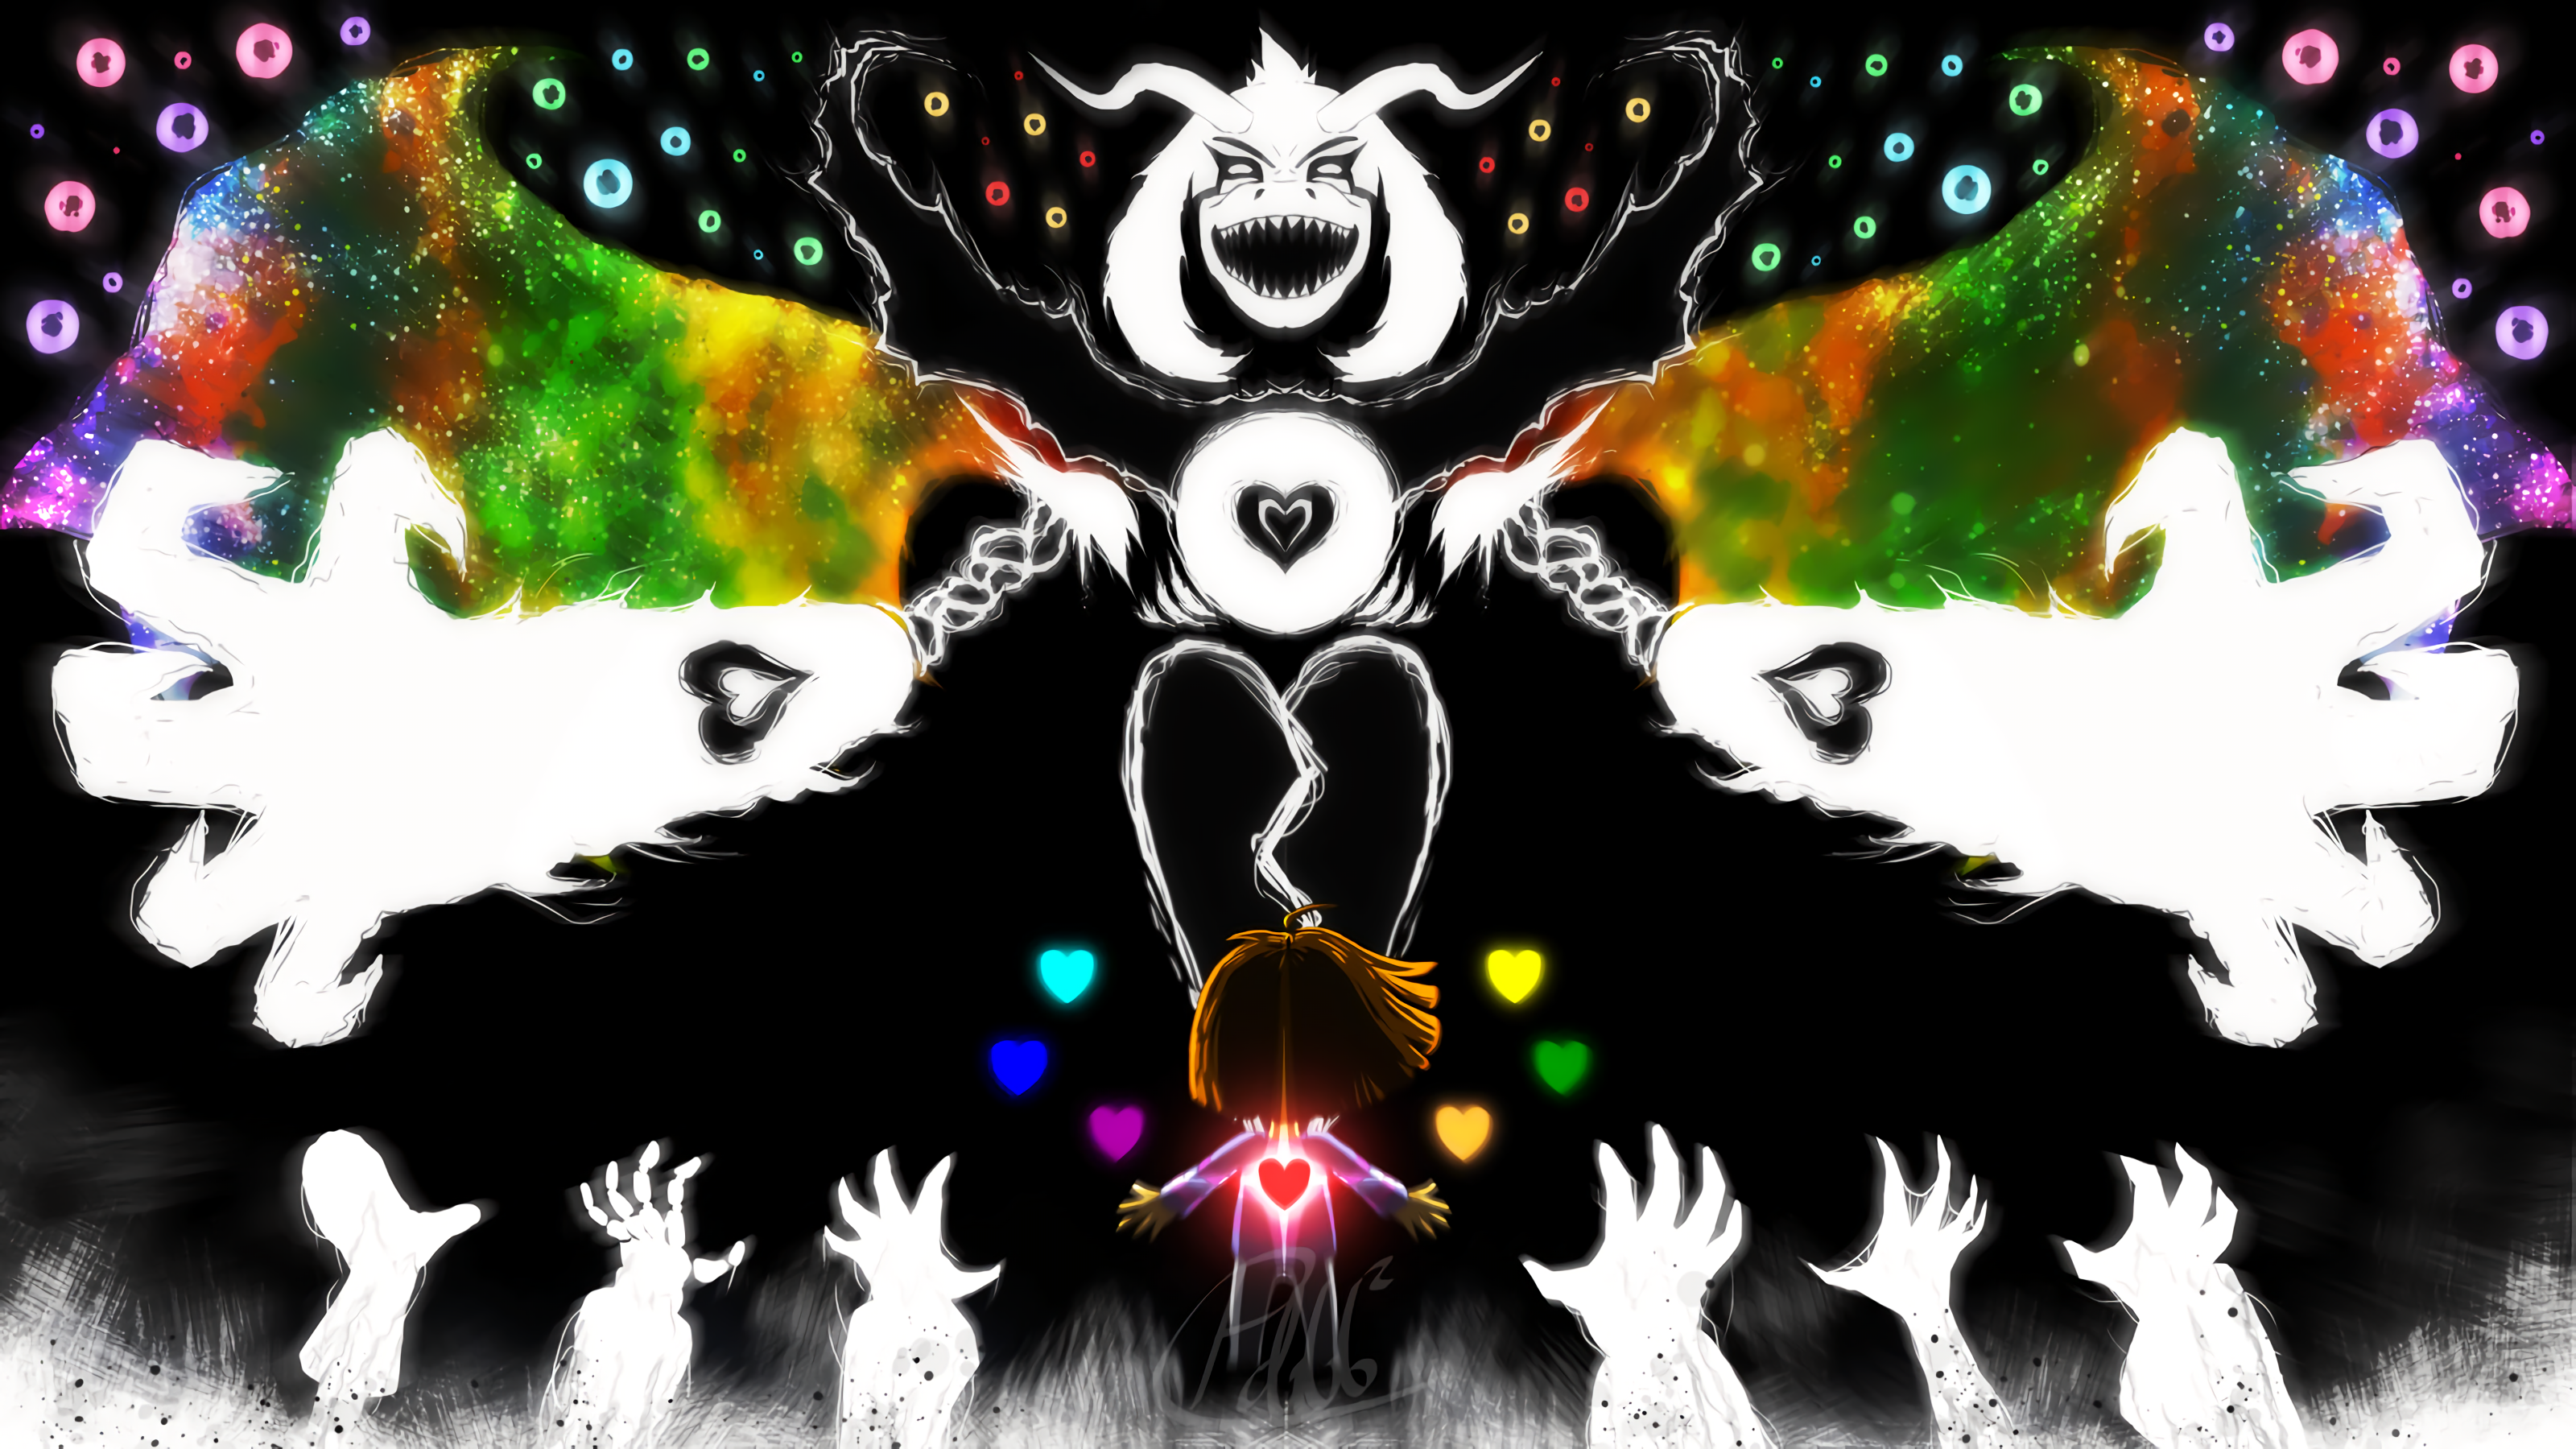 Asriel Dreemurr Boss Fight